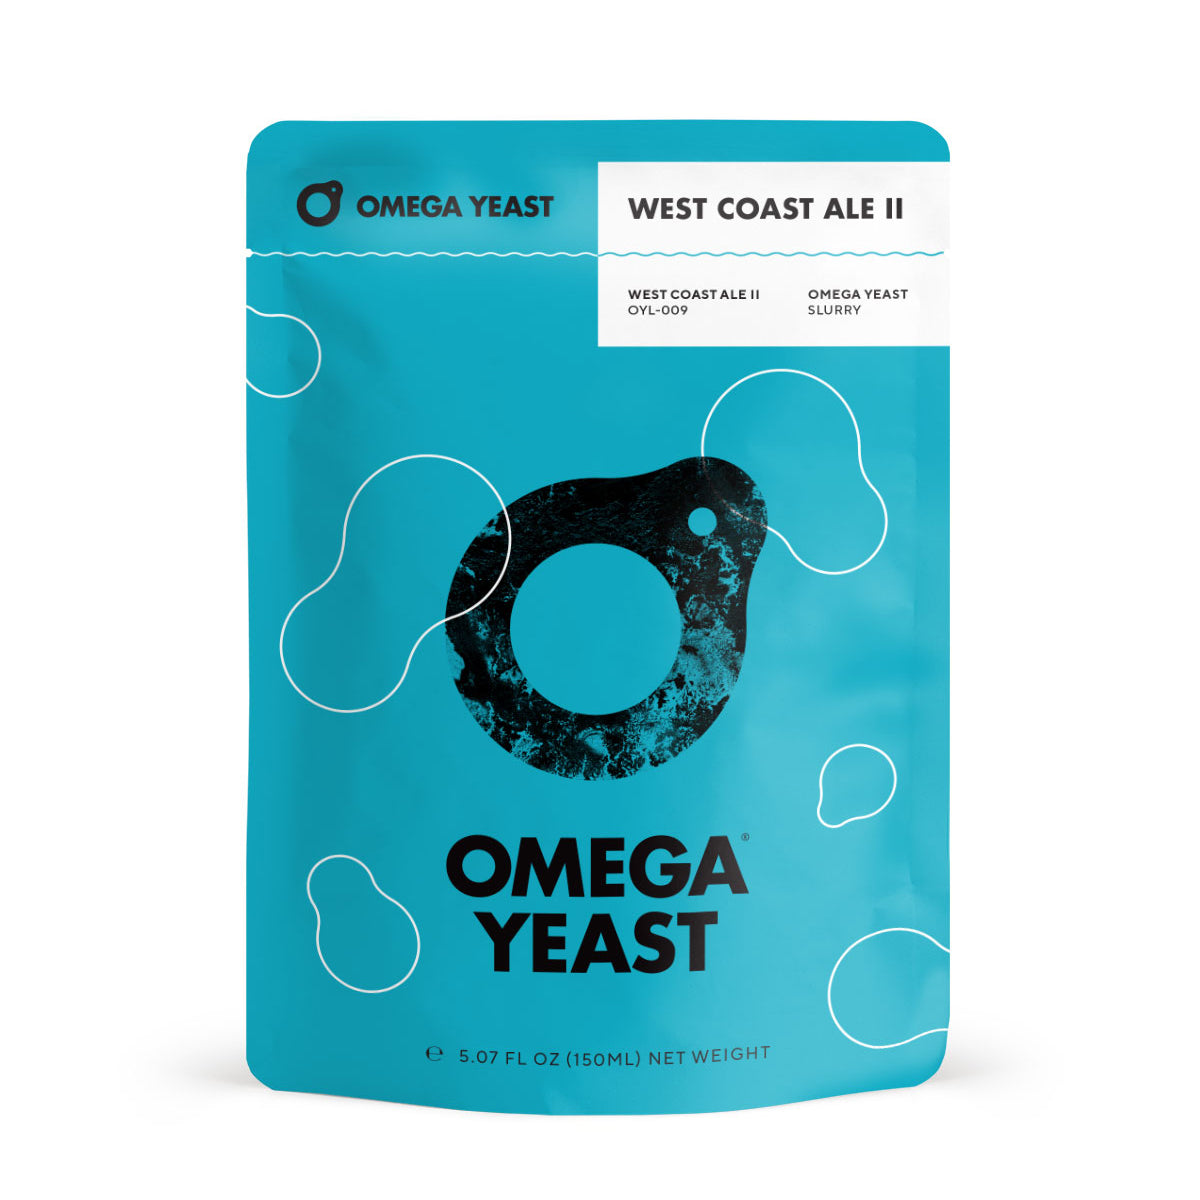 Omega Yeast OYL-009 West Coast Ale II